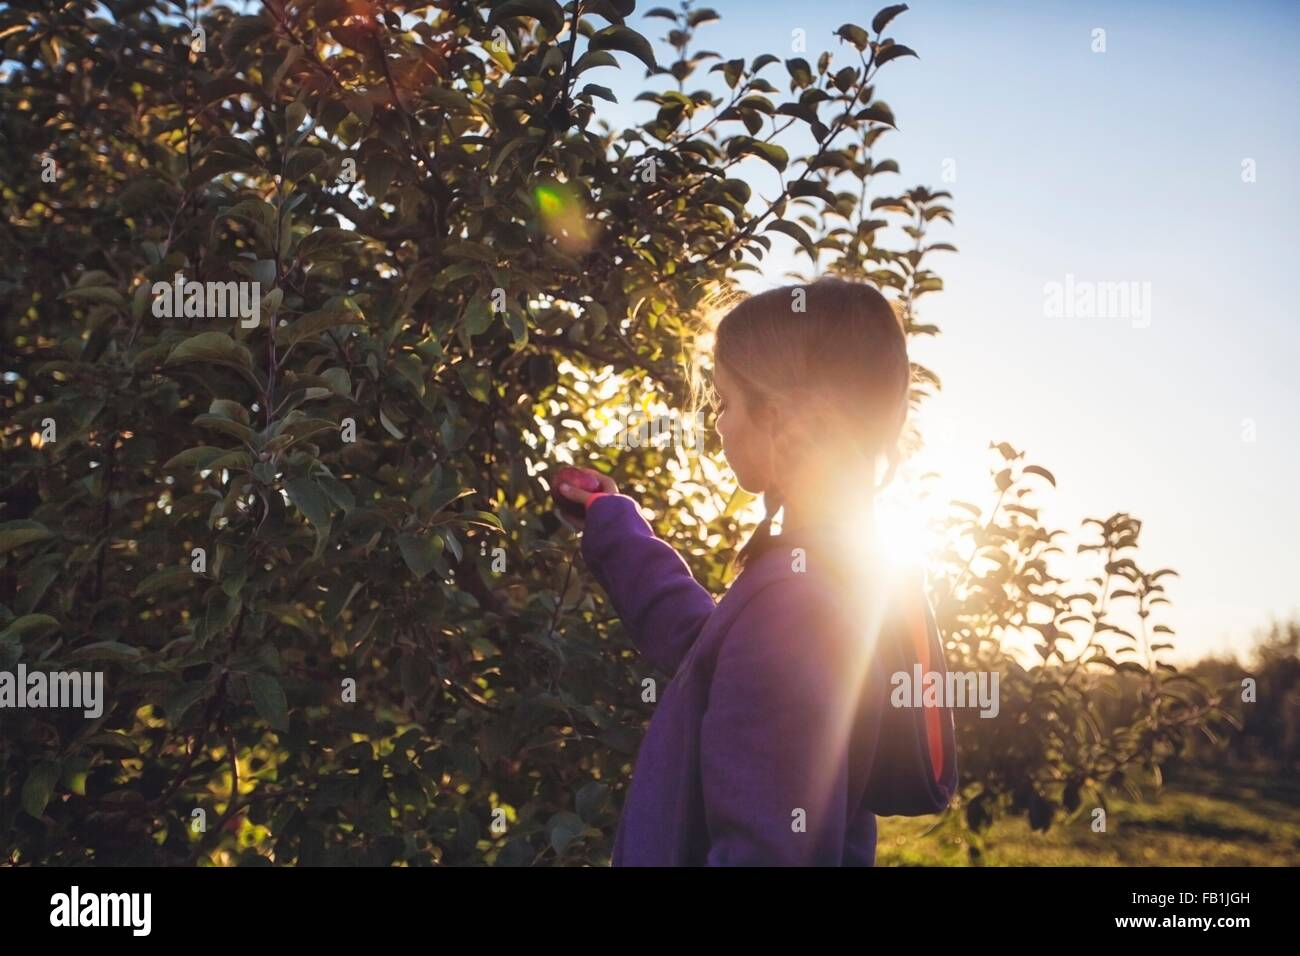 Side view of girl in orchard picking apple from tree - Stock Image